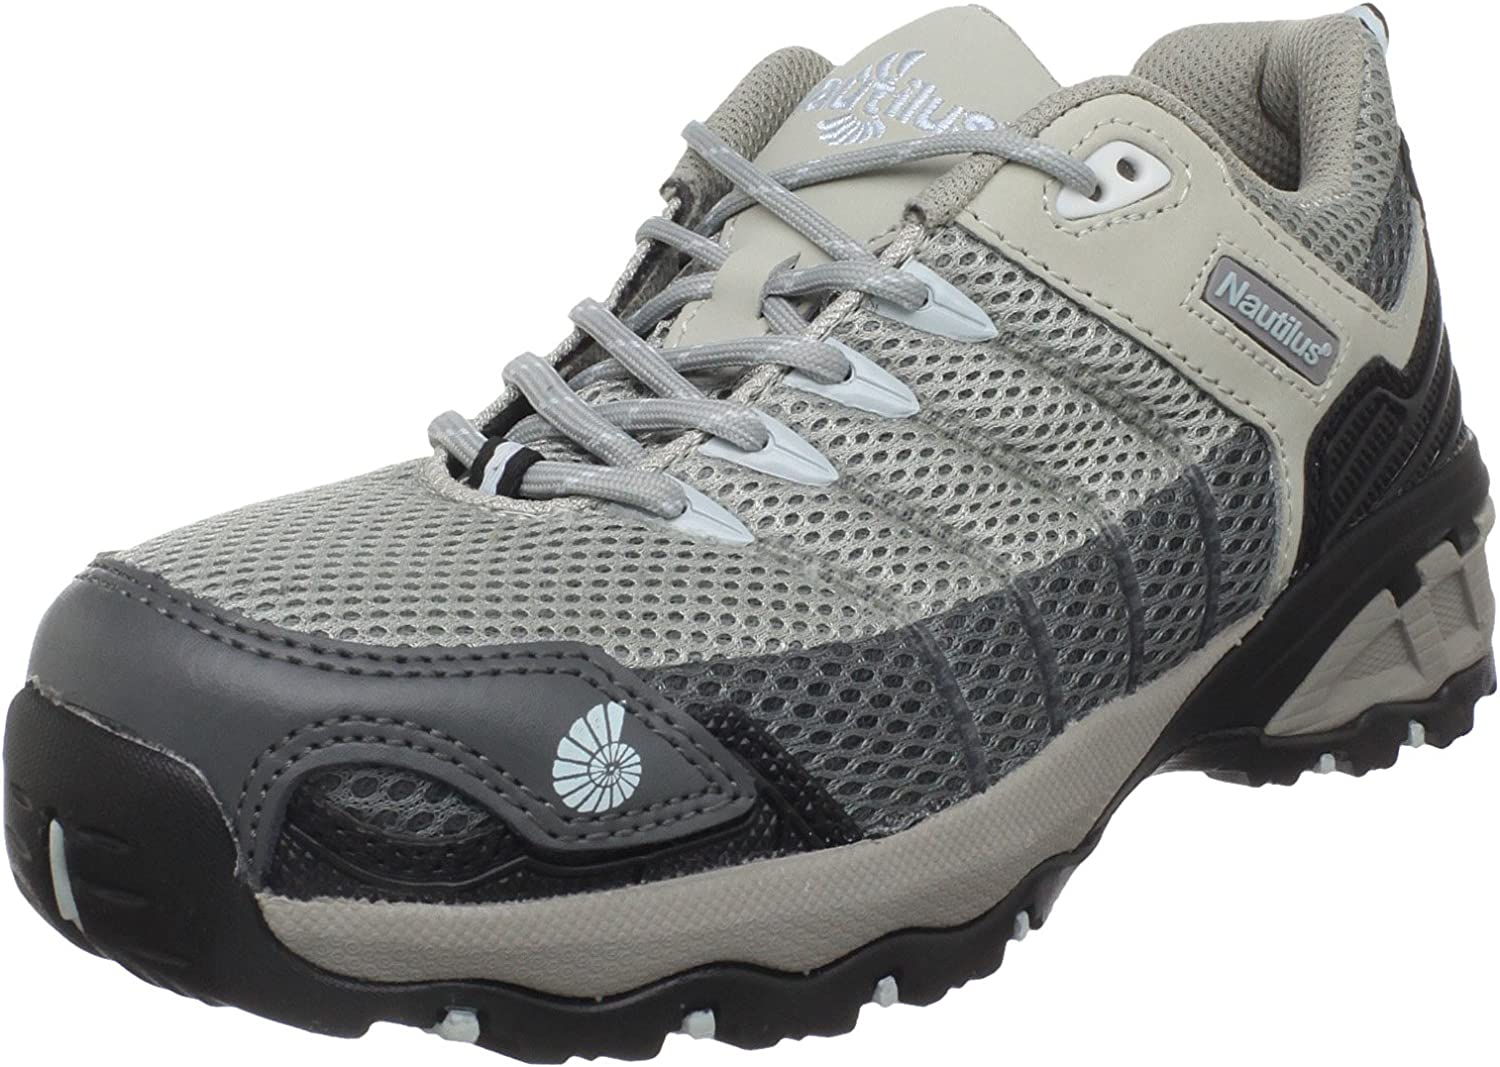 Nautilus Safety Footwear N1751 Women's Comp Toe EH Athletic Work Shoes